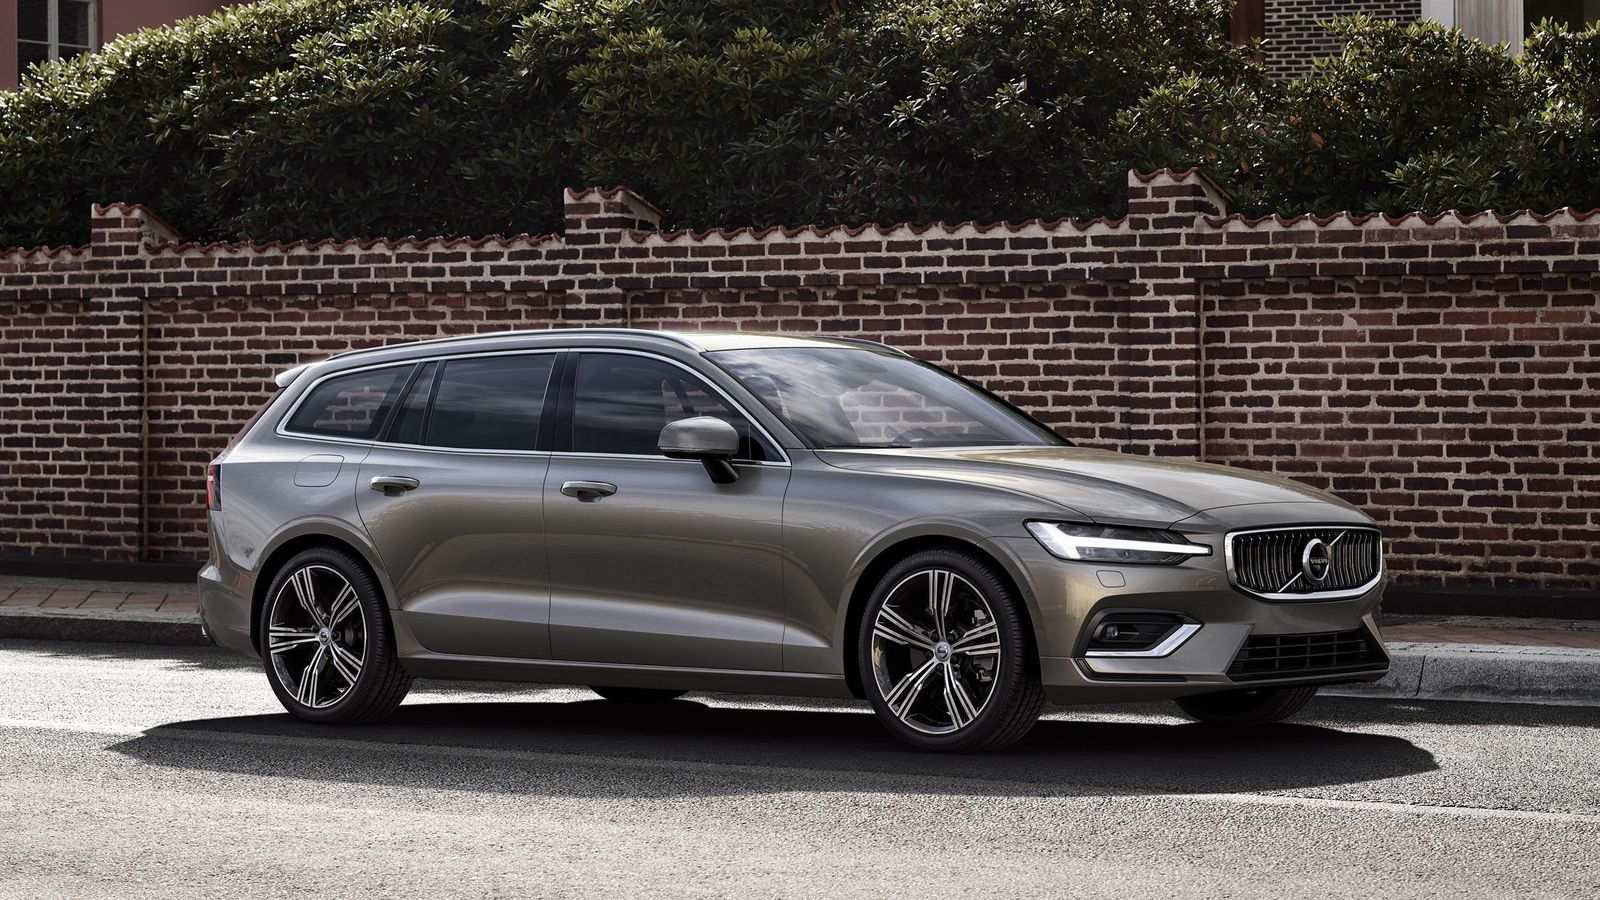 67 New The Volvo Phev 2019 Performance And New Engine Price for The Volvo Phev 2019 Performance And New Engine